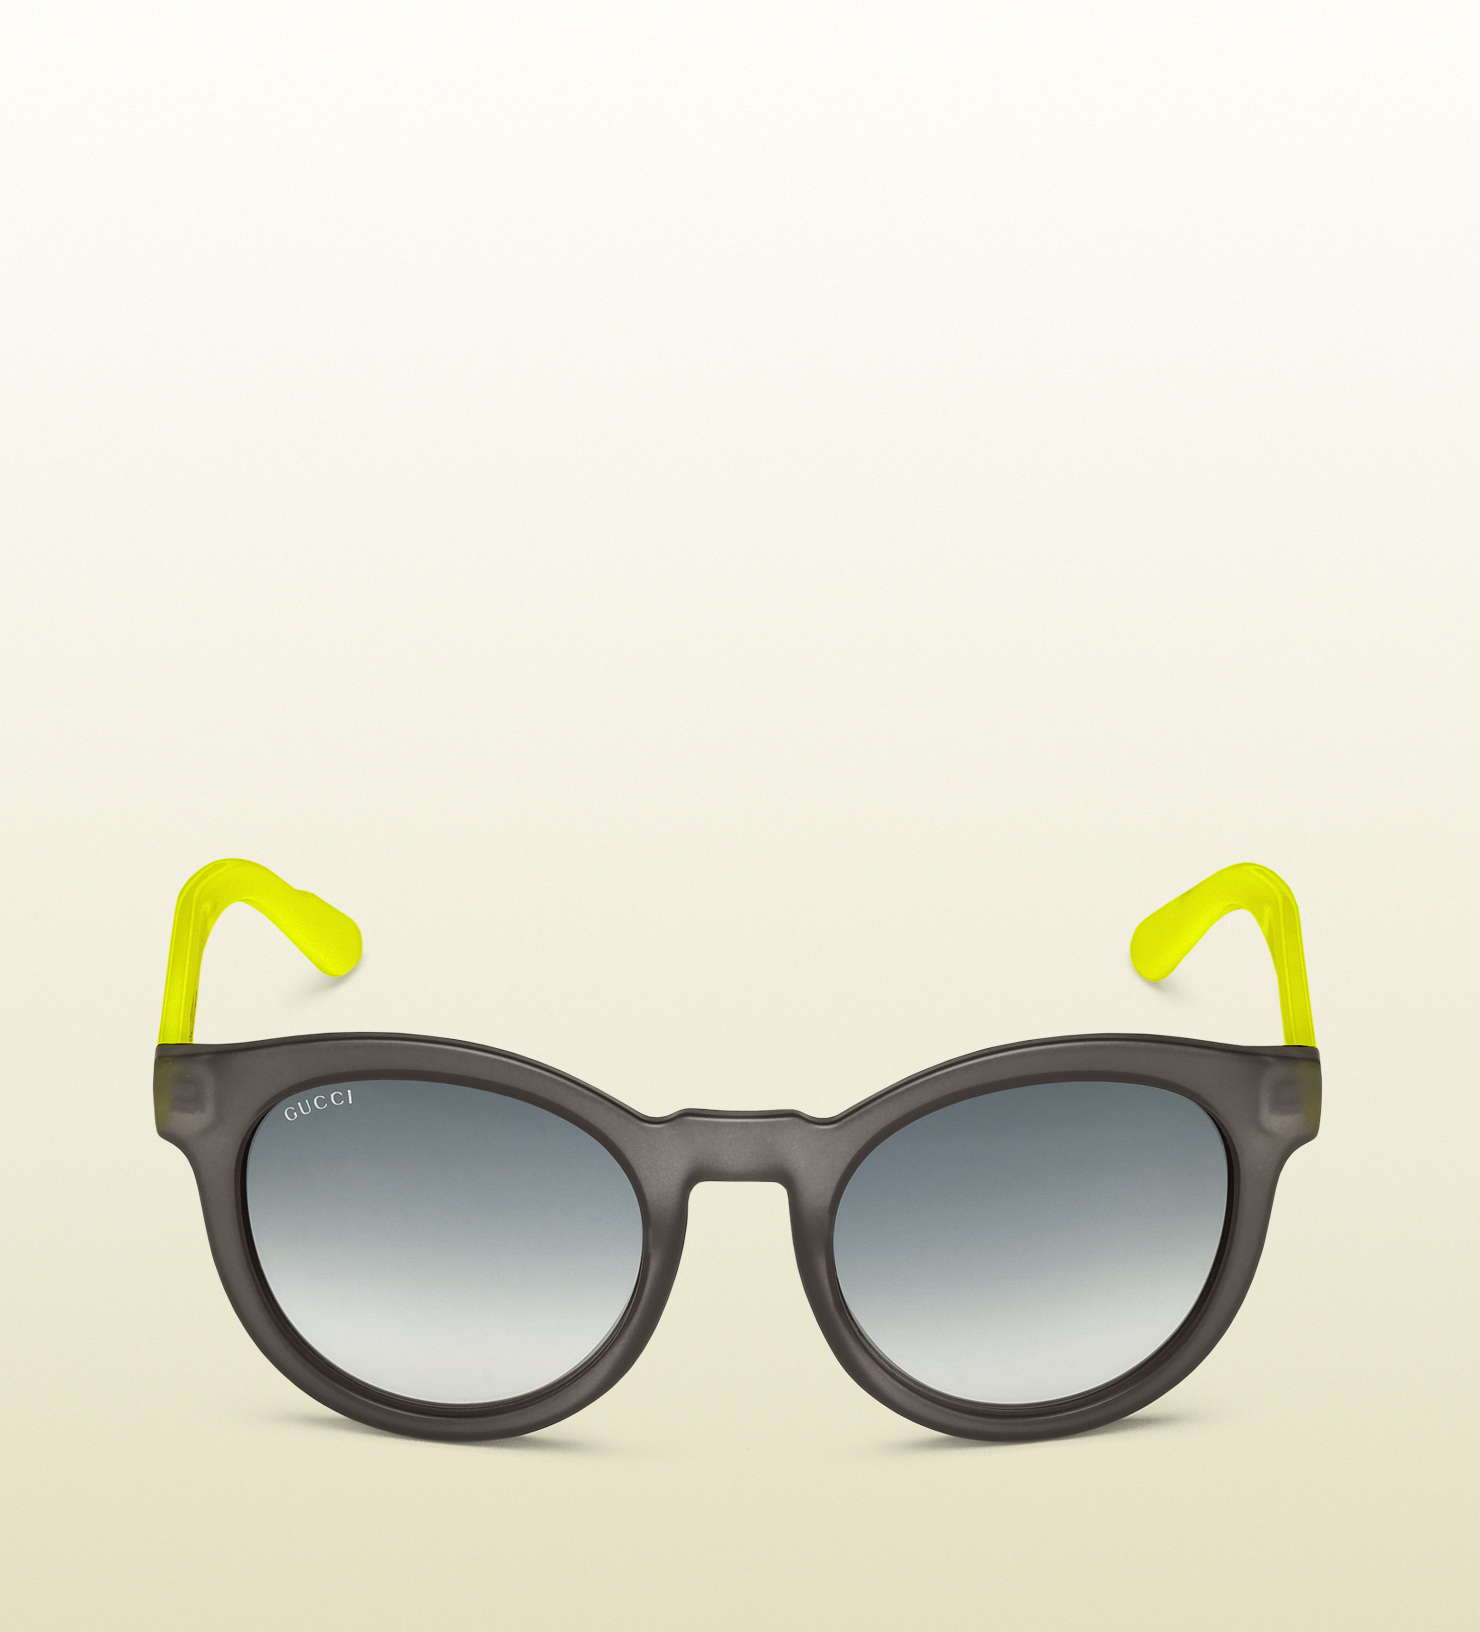 Gucci Round Vintage Inspired Biobased Sunglasses in Yellow ...